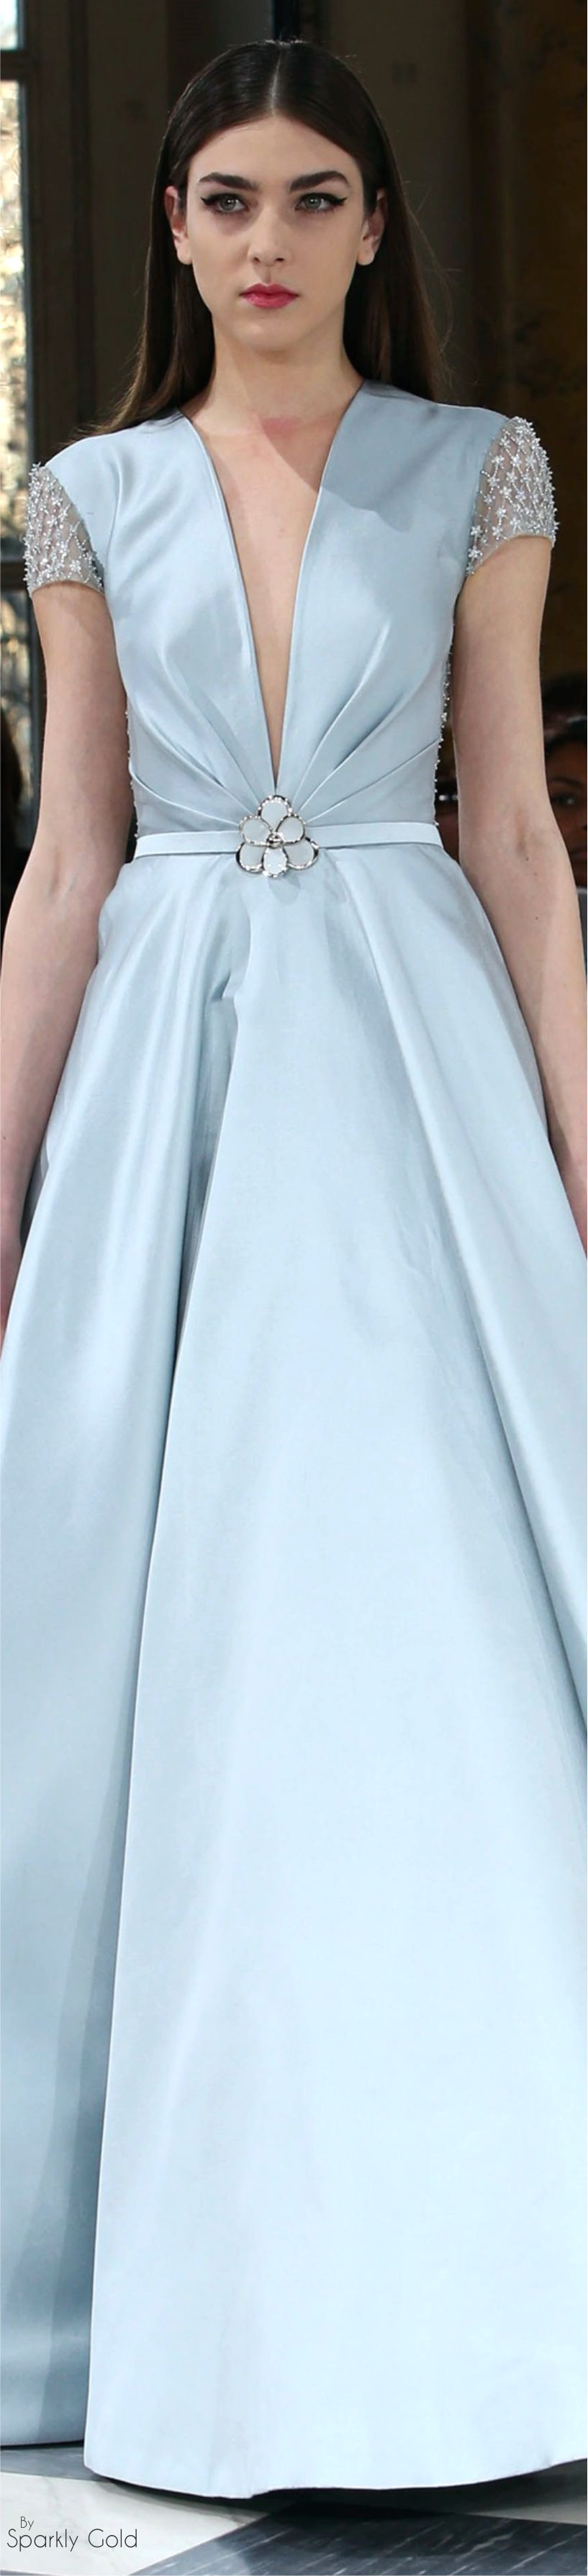 ℳiss Giana's Gorgeous Gowns ♛ ♛  Georges Hobeika Spring 2016 Couture                                                                                                                                                     More